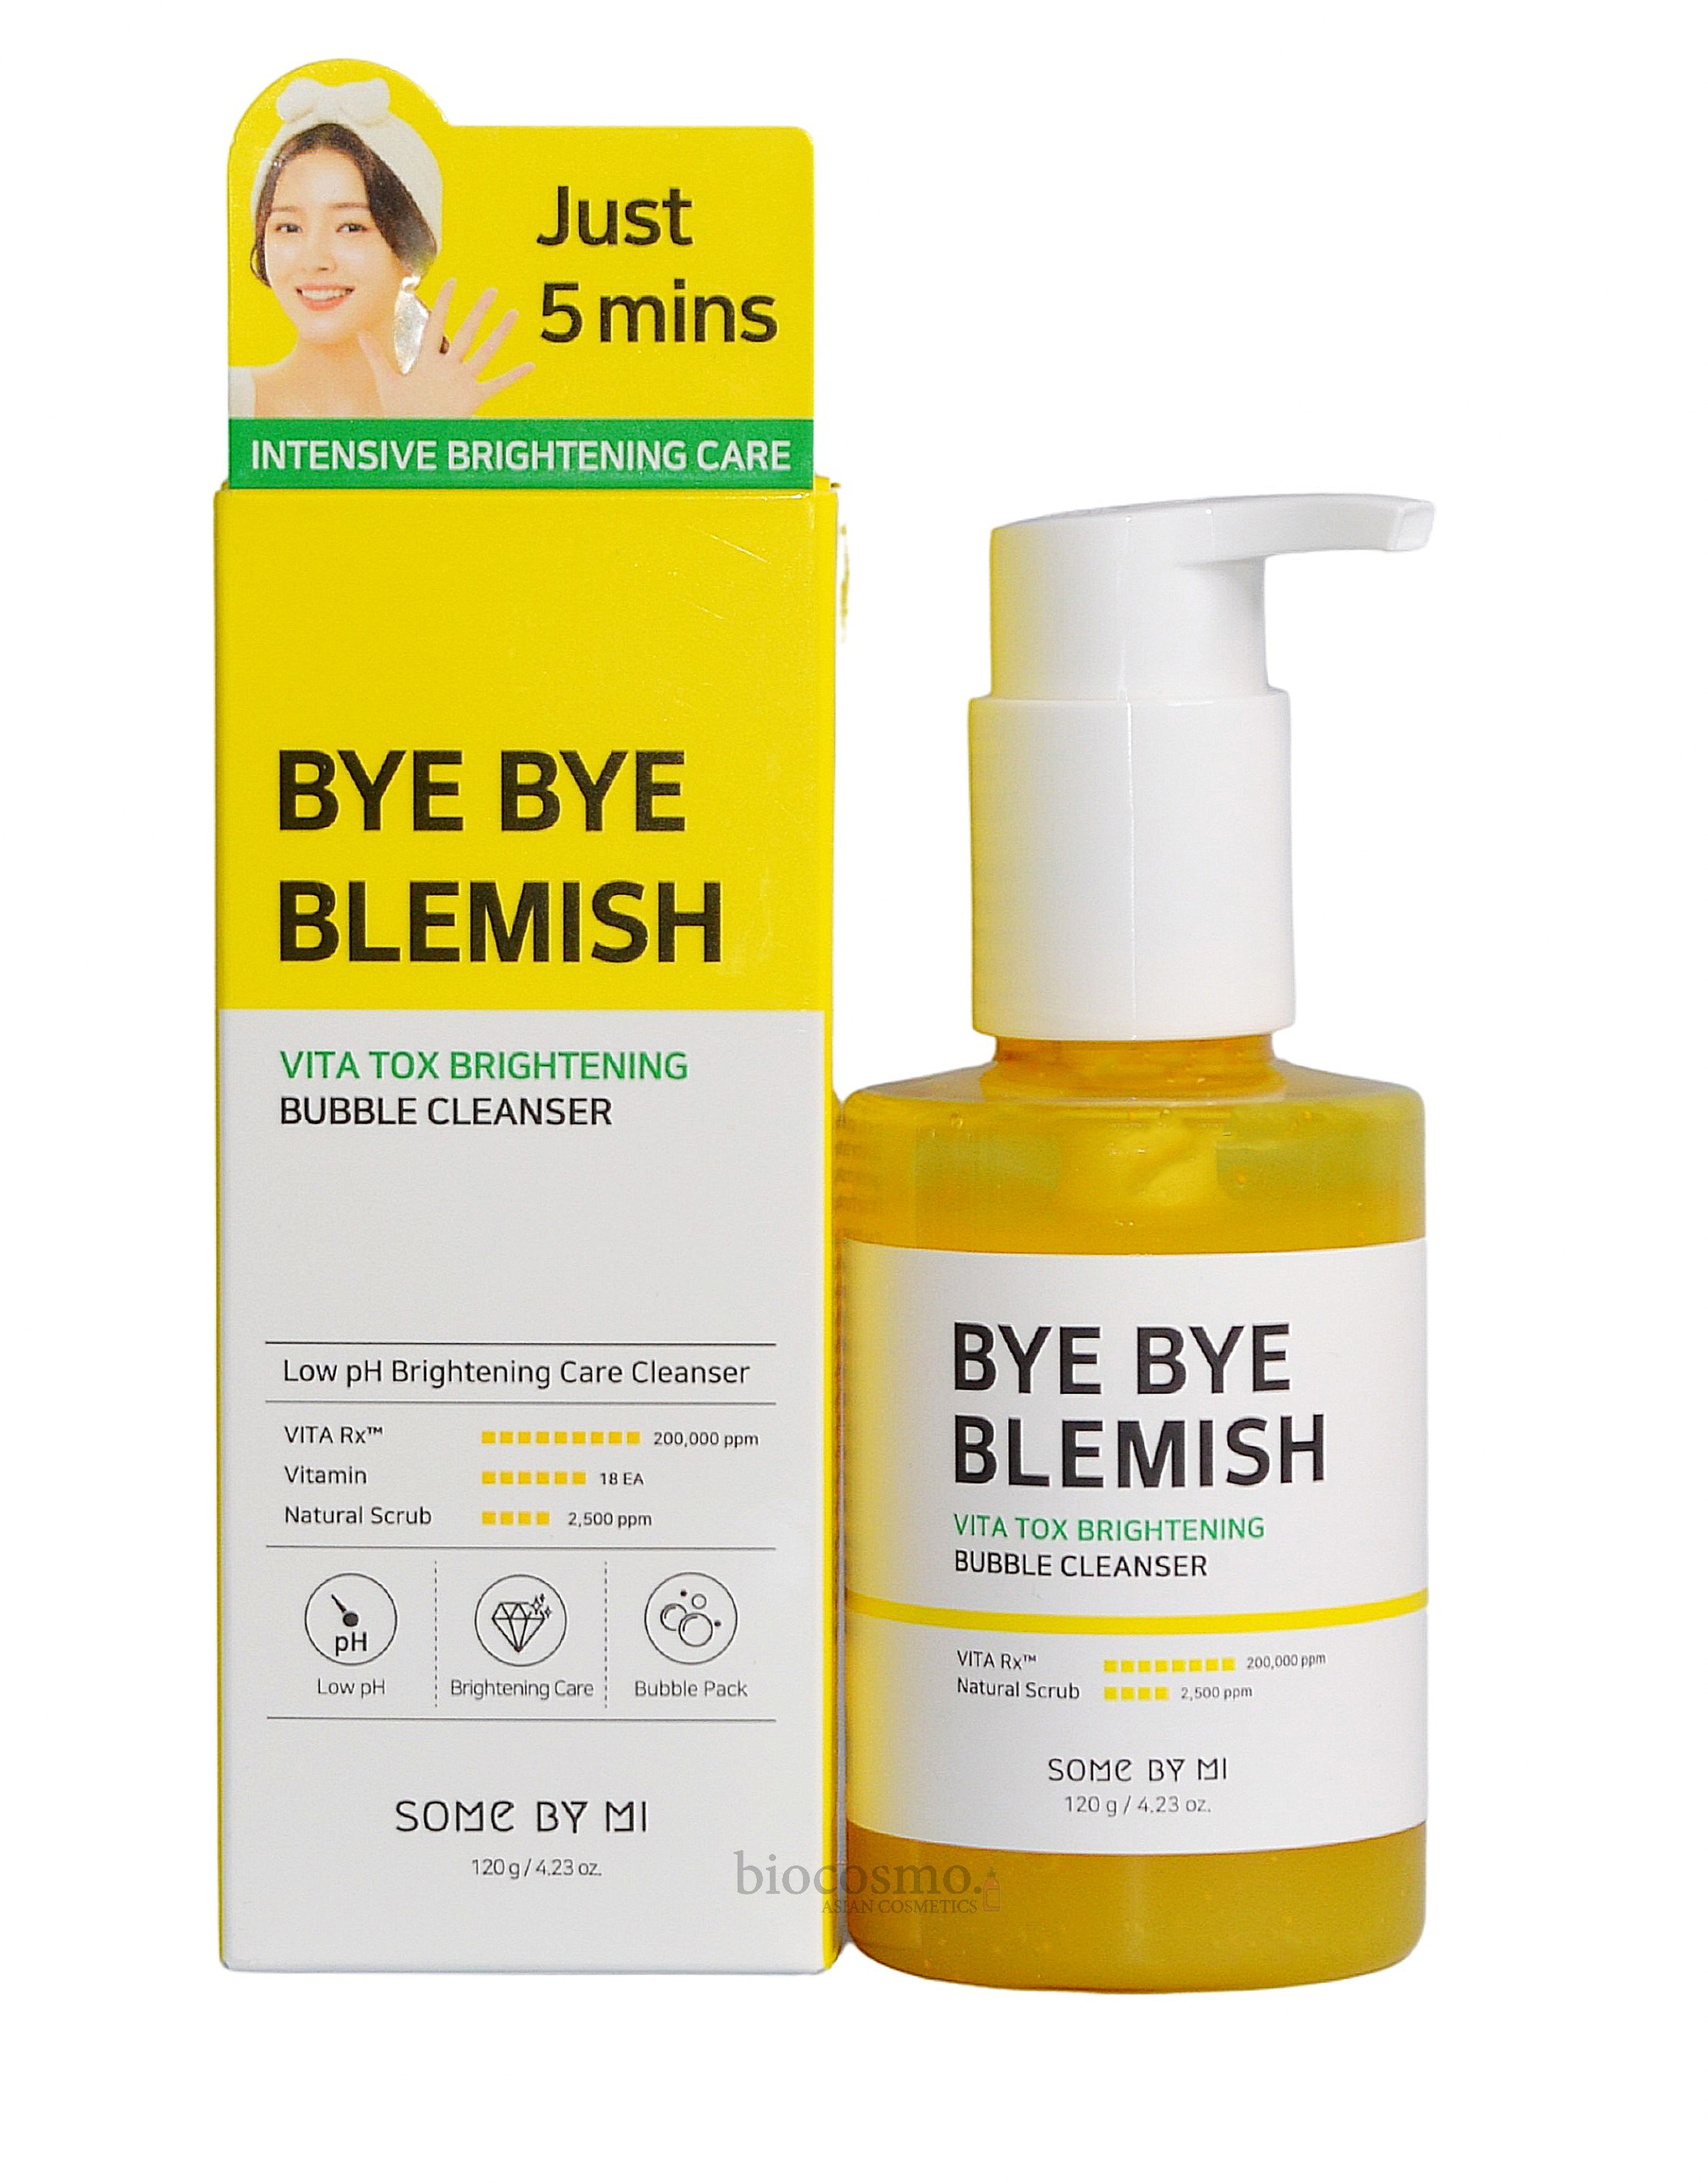 Осветляющая кислородная пенка Some By Mi Bye Bye Blemish Vita Tox Brightening Bubble Cleanser - 120 мл